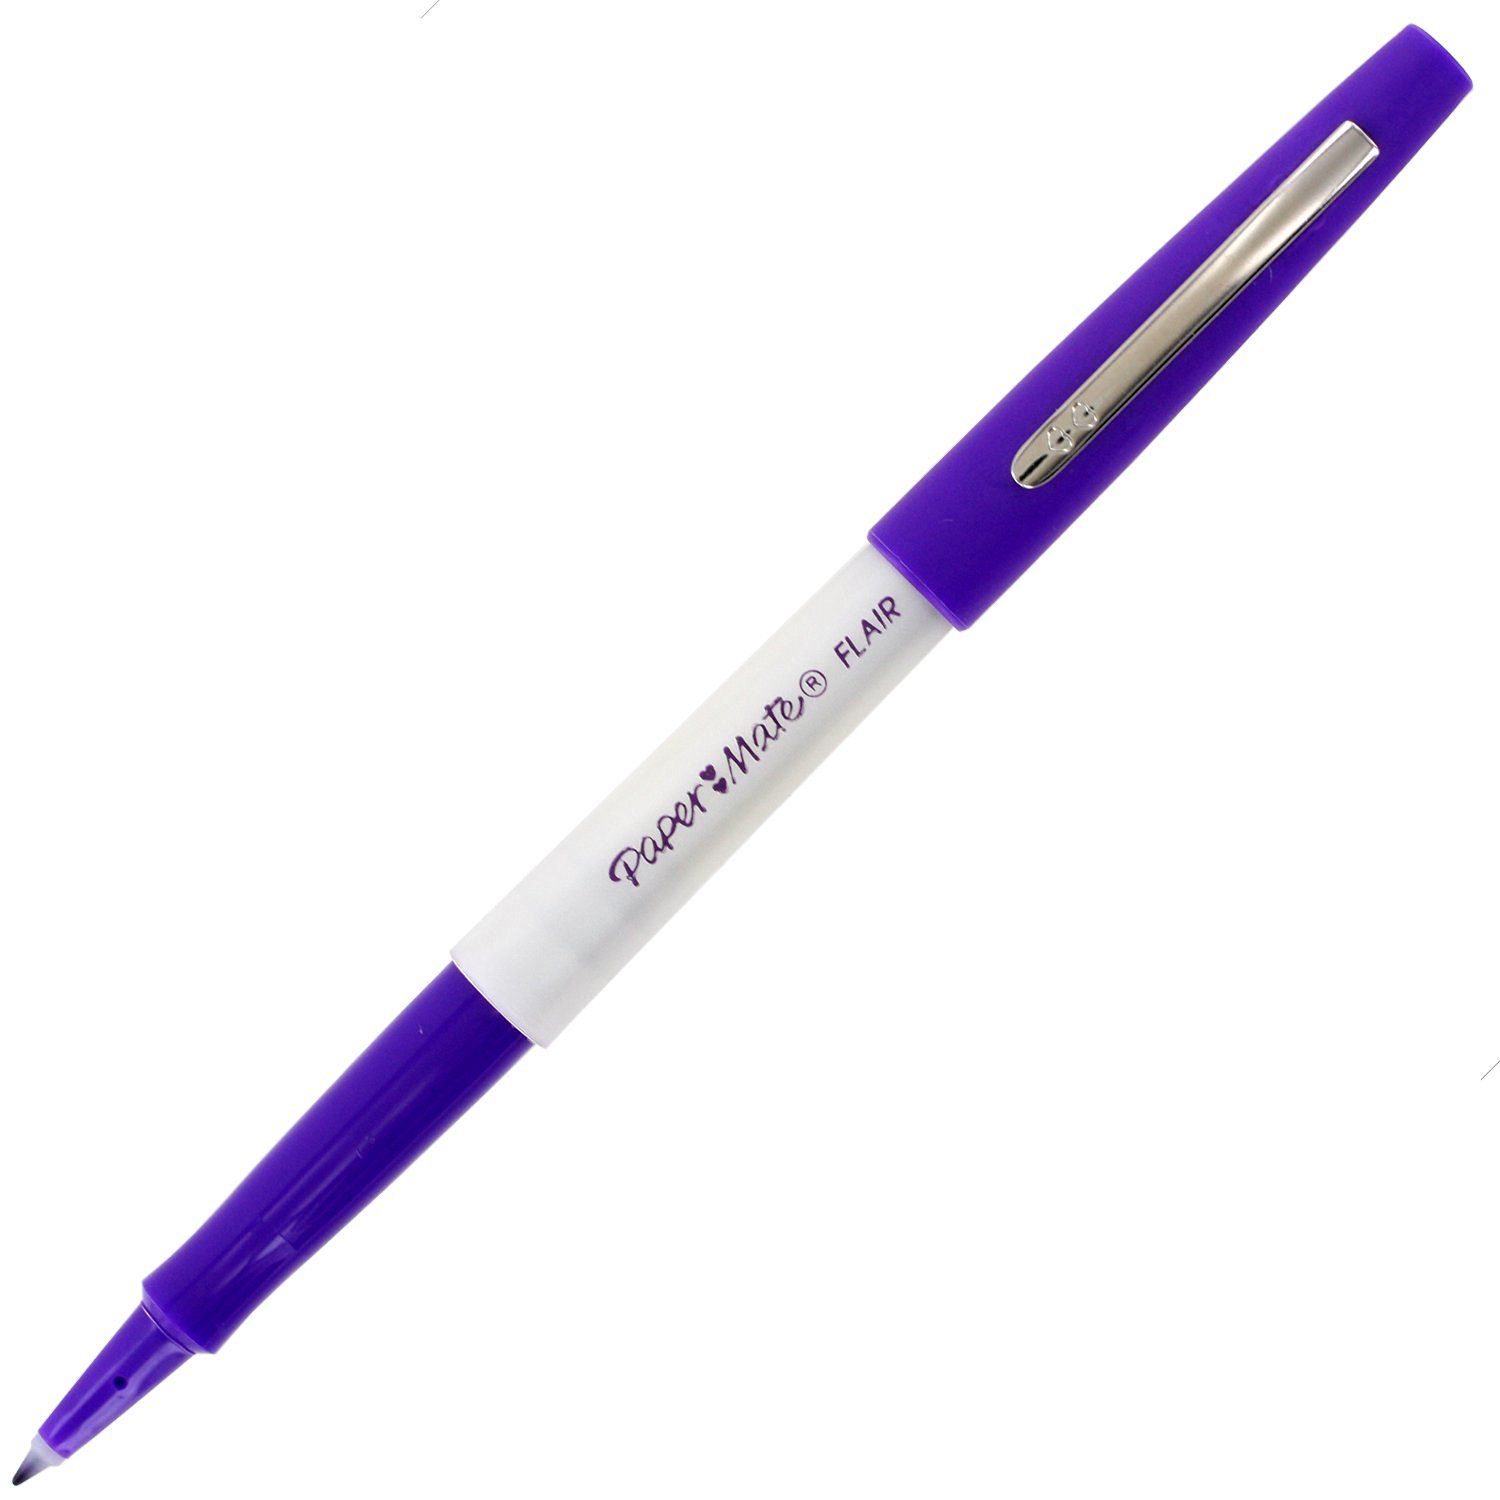 Paper Mate Flair Porous Point Stick Liquid Pen, Purple Ink, Medium Point, Pack of 12 (Bulk Packaging)